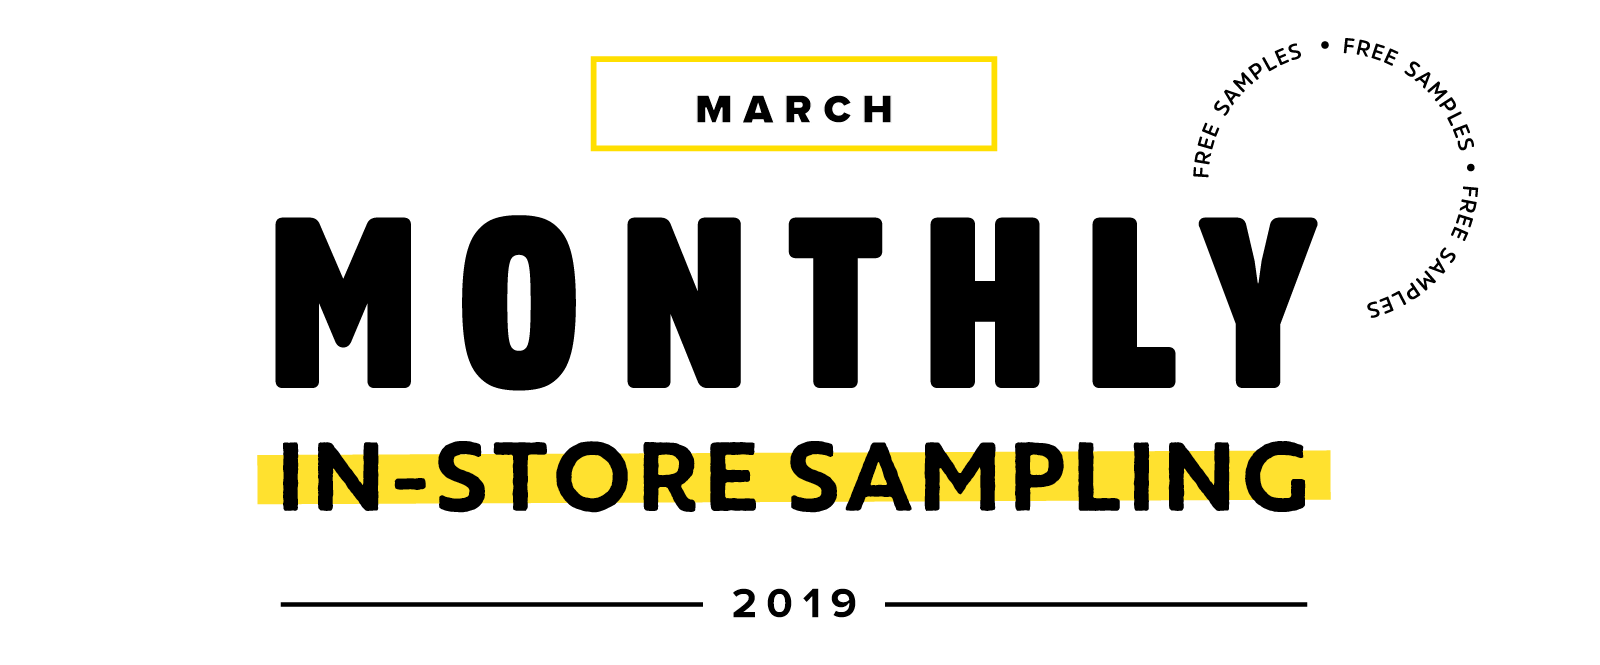 2019_monthly-instore-sampling_march.png